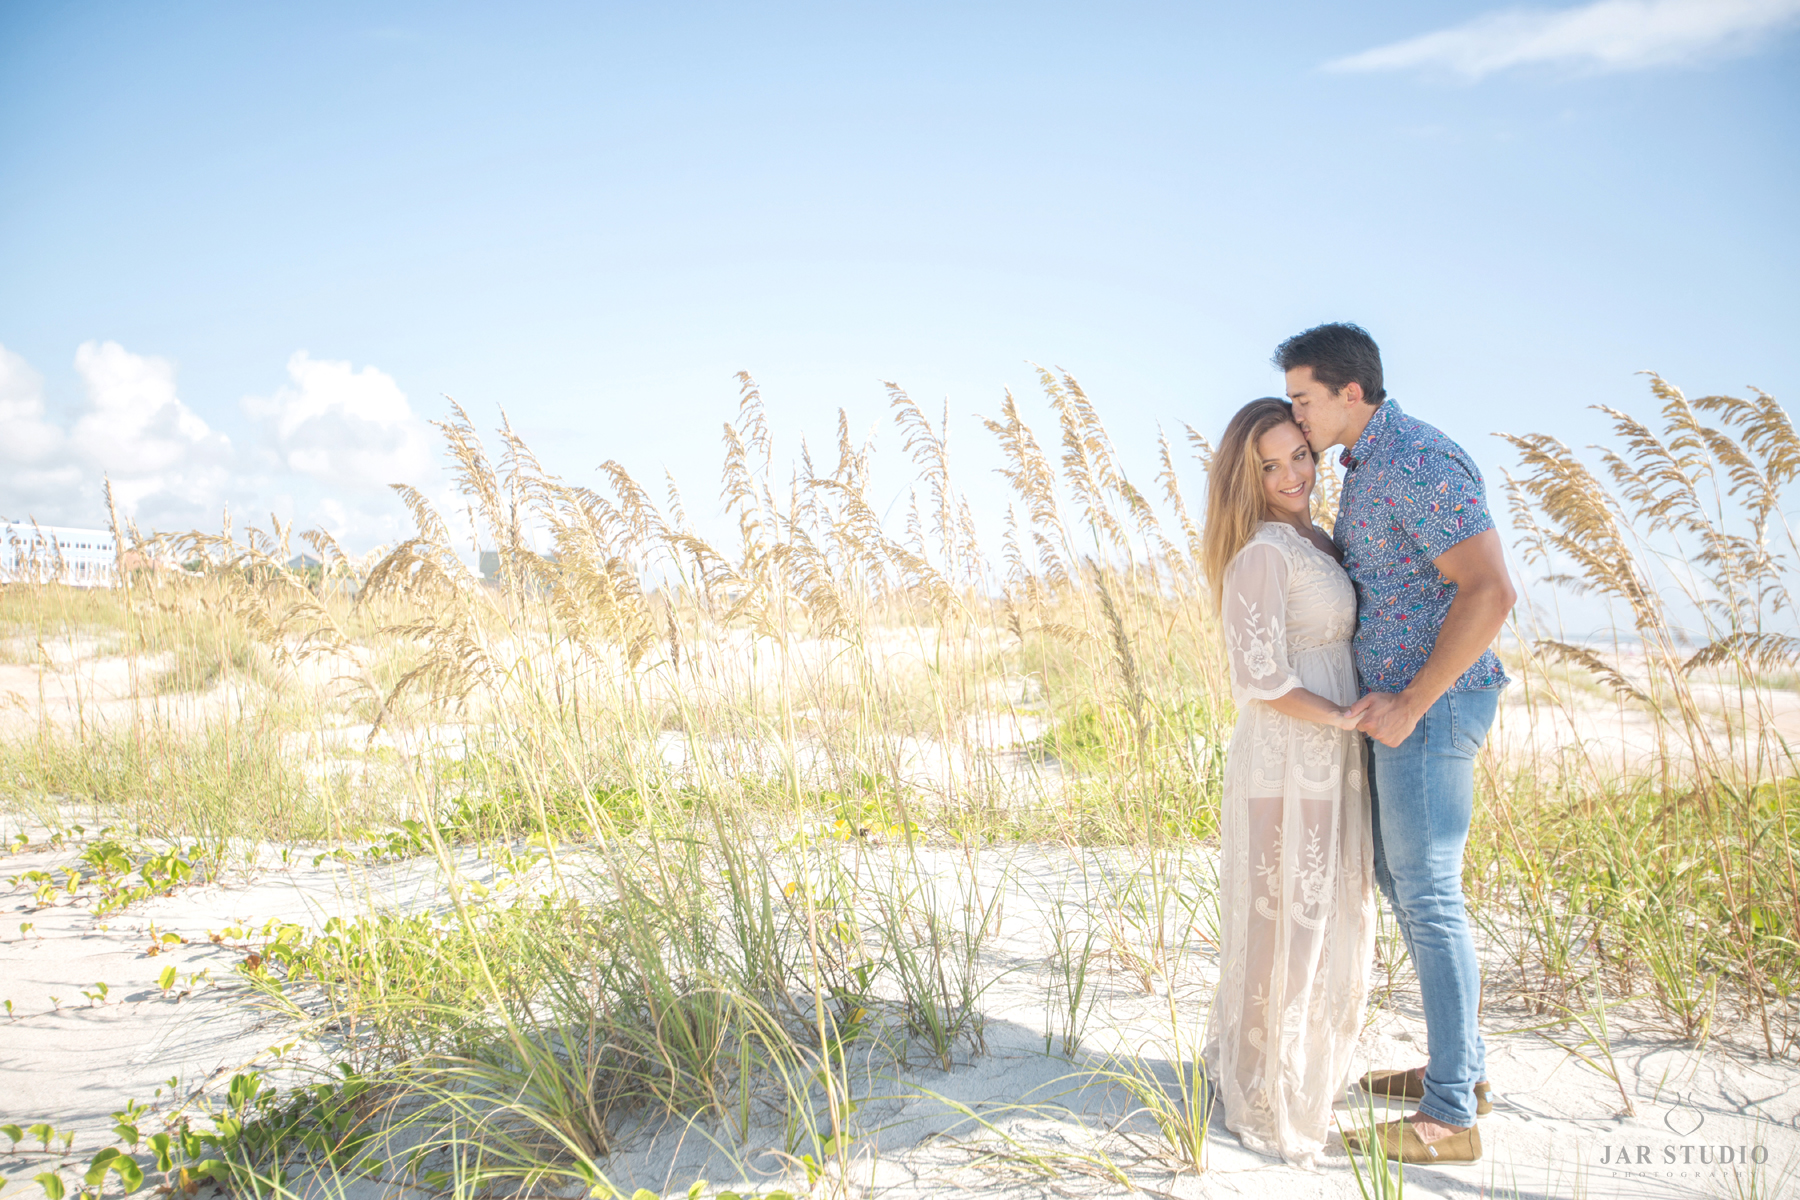 JARSTUDIO-engagement-photographer-orlando-fl-1818 (12).JPG